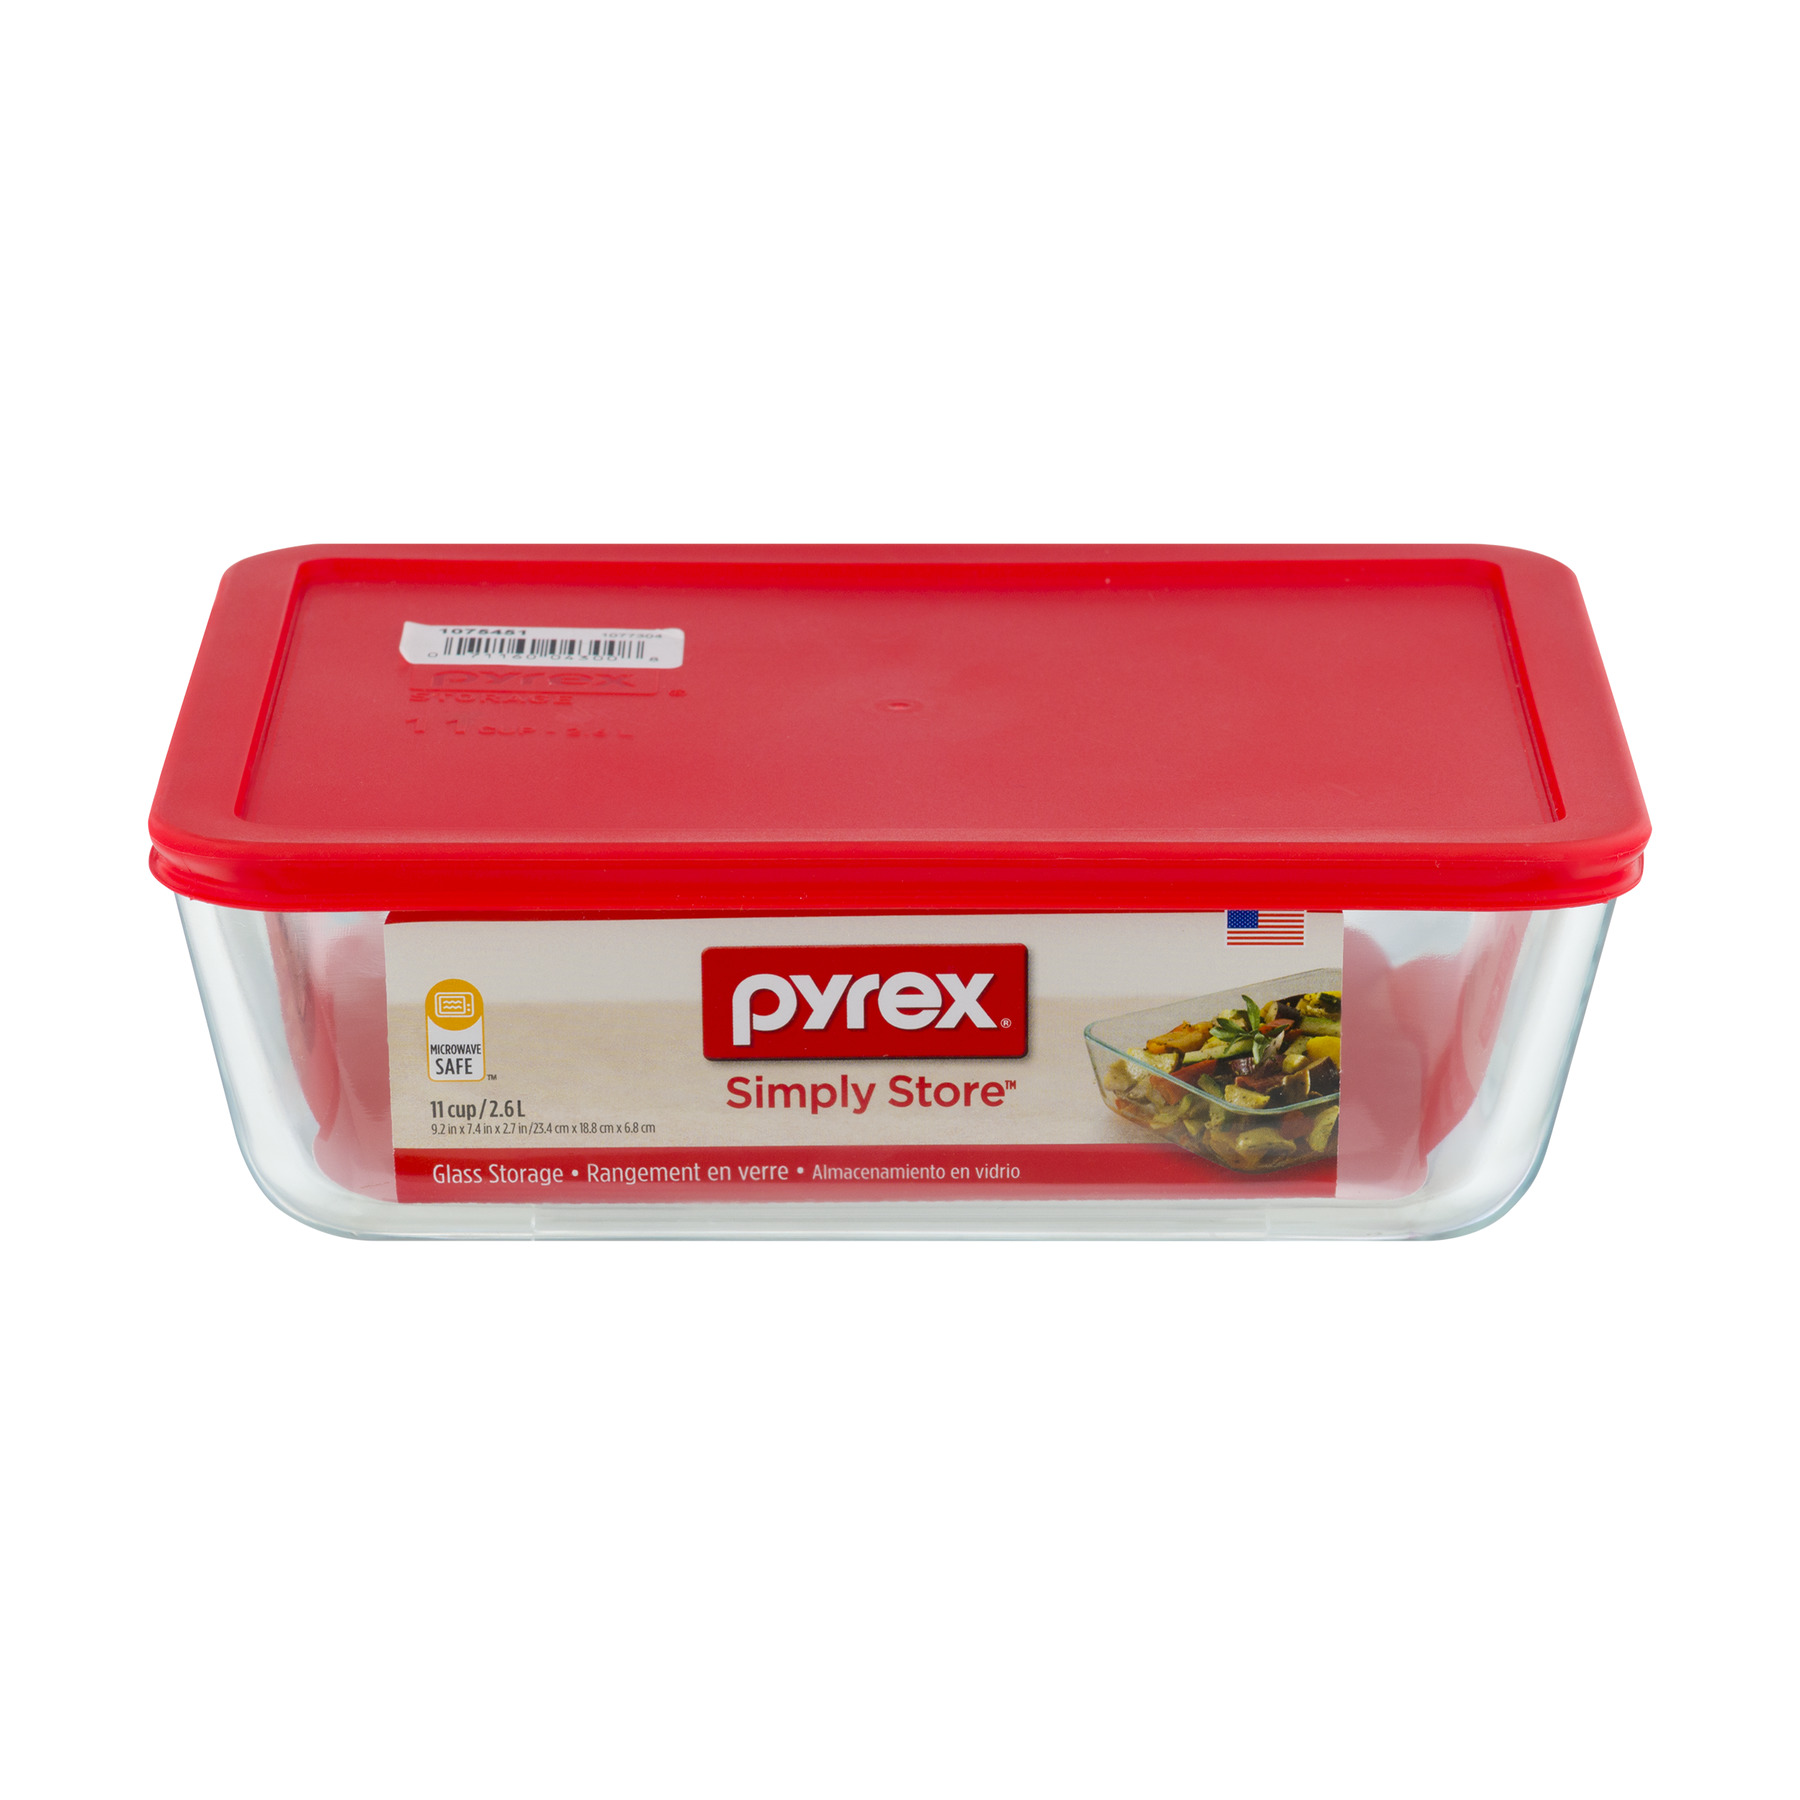 Pyrex Simply Store Glass Storage 11 Cup, 1.0 CT